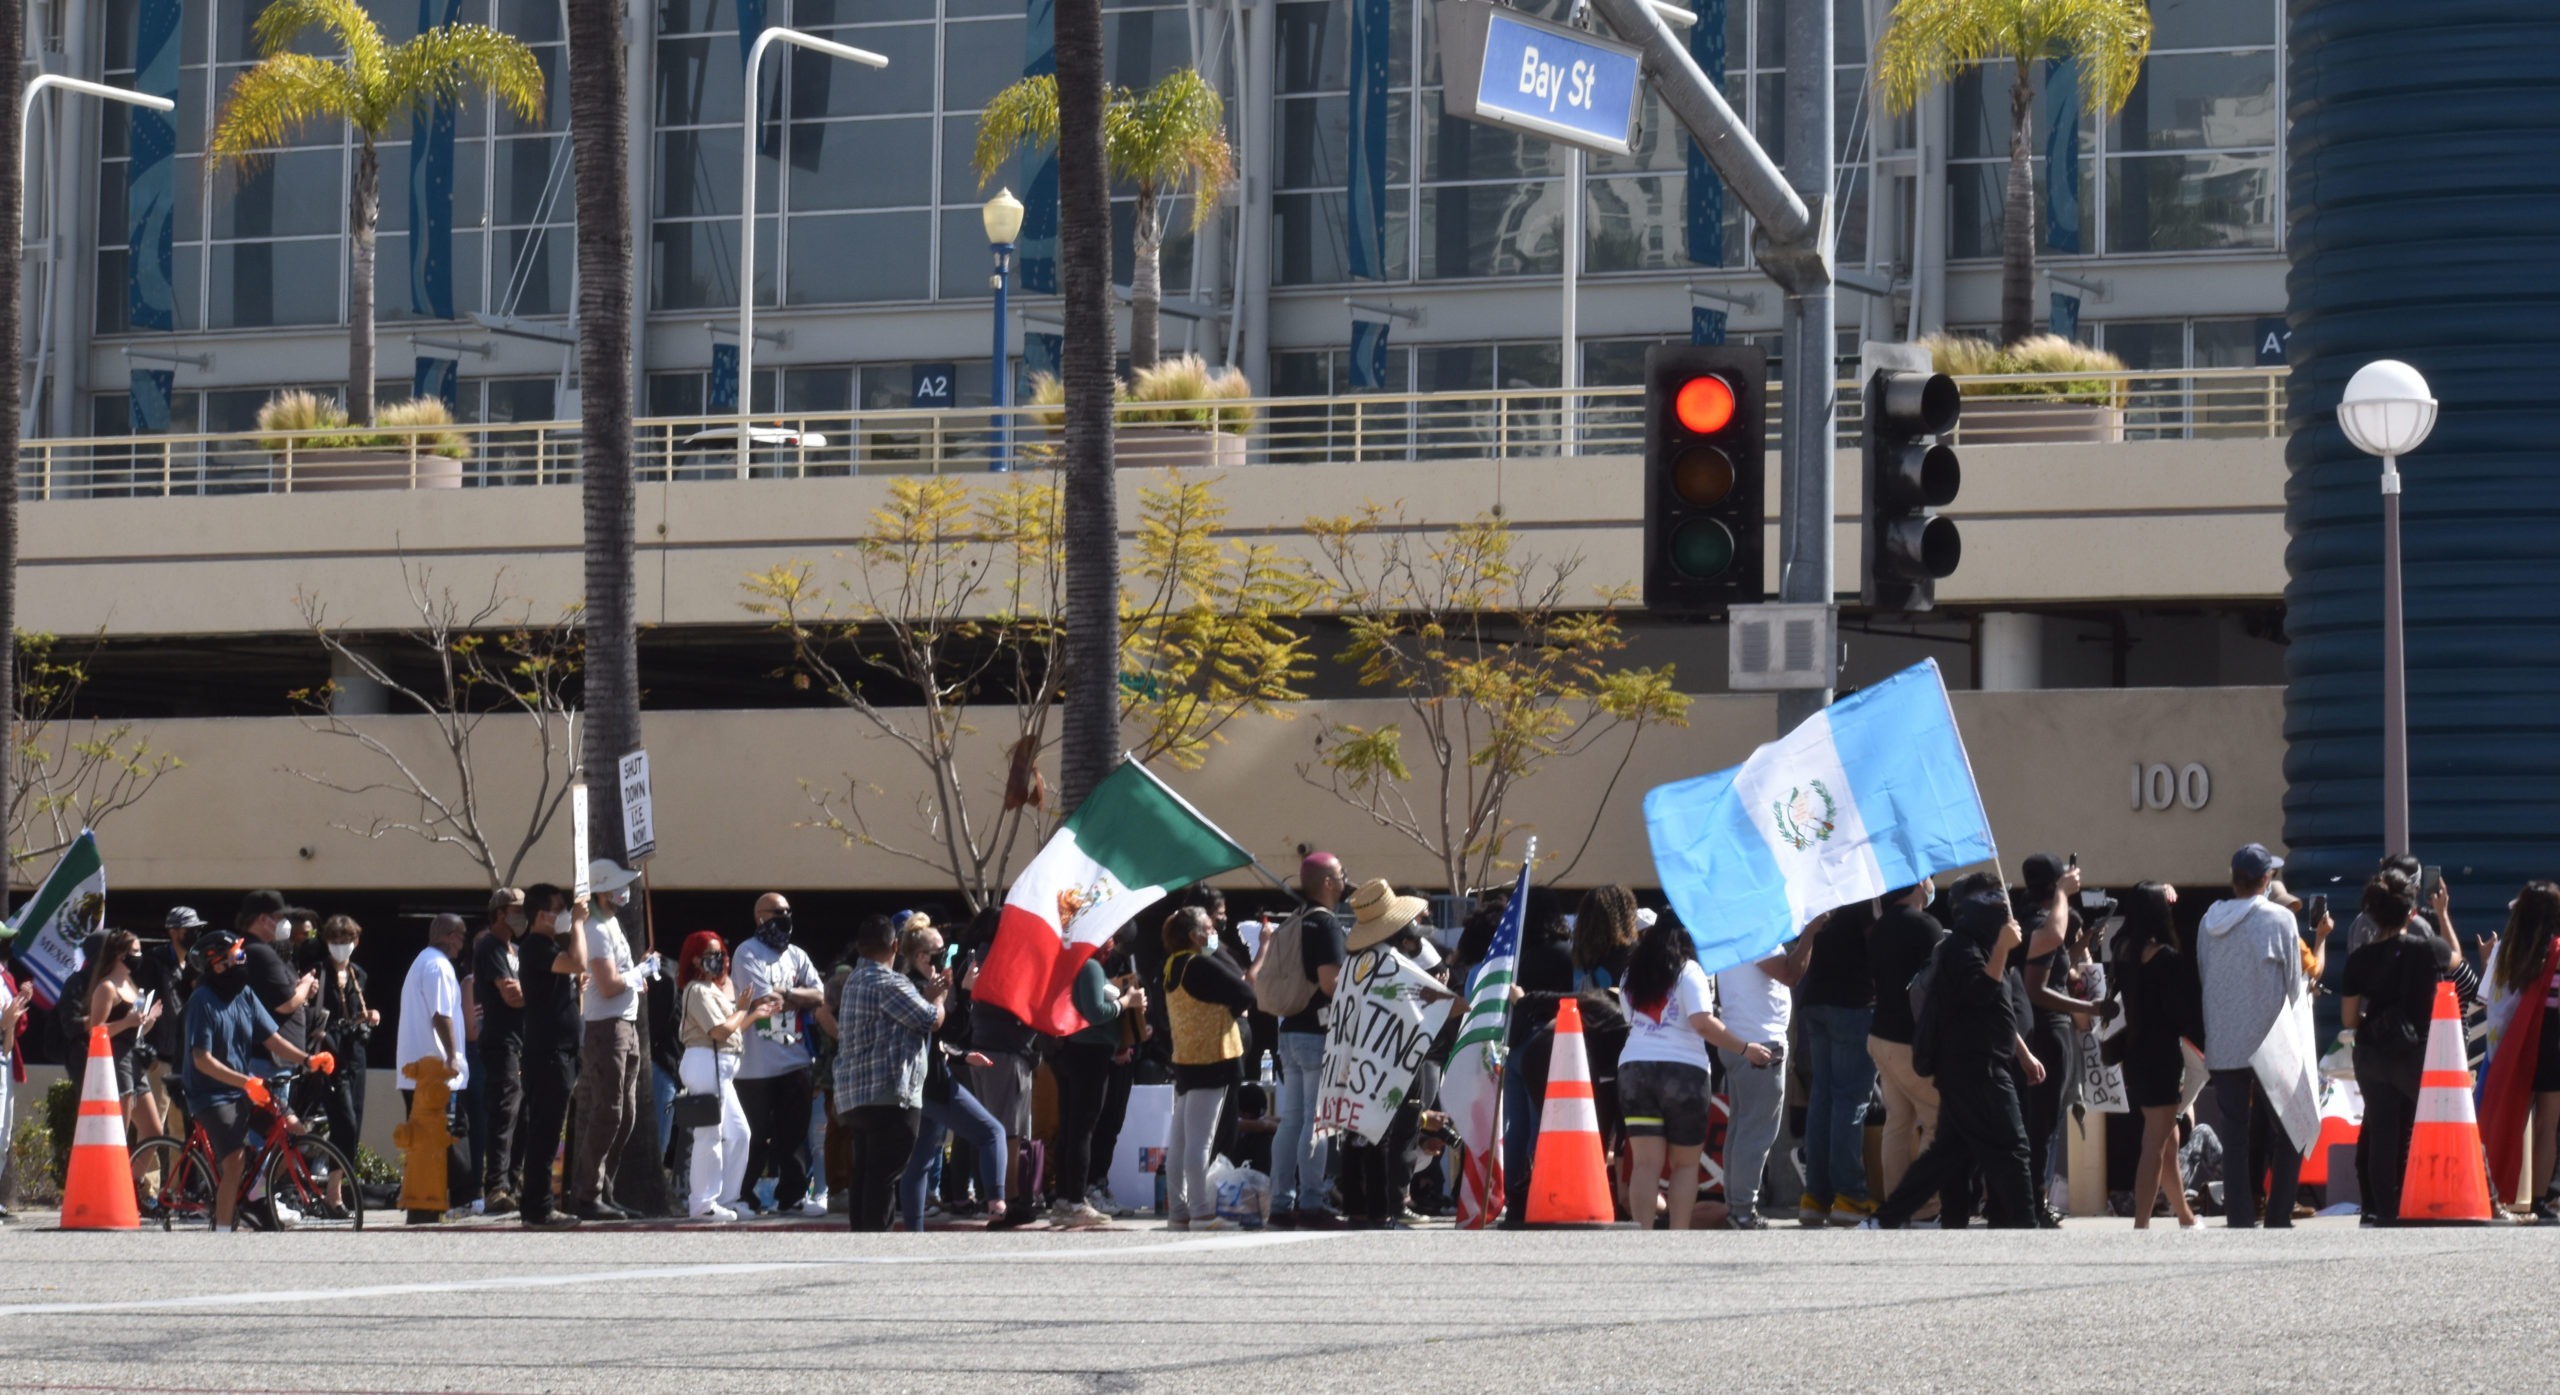 Activists rally Downtown, demanding transparency, access at Long Beach migrant shelter • Long Beach Post News